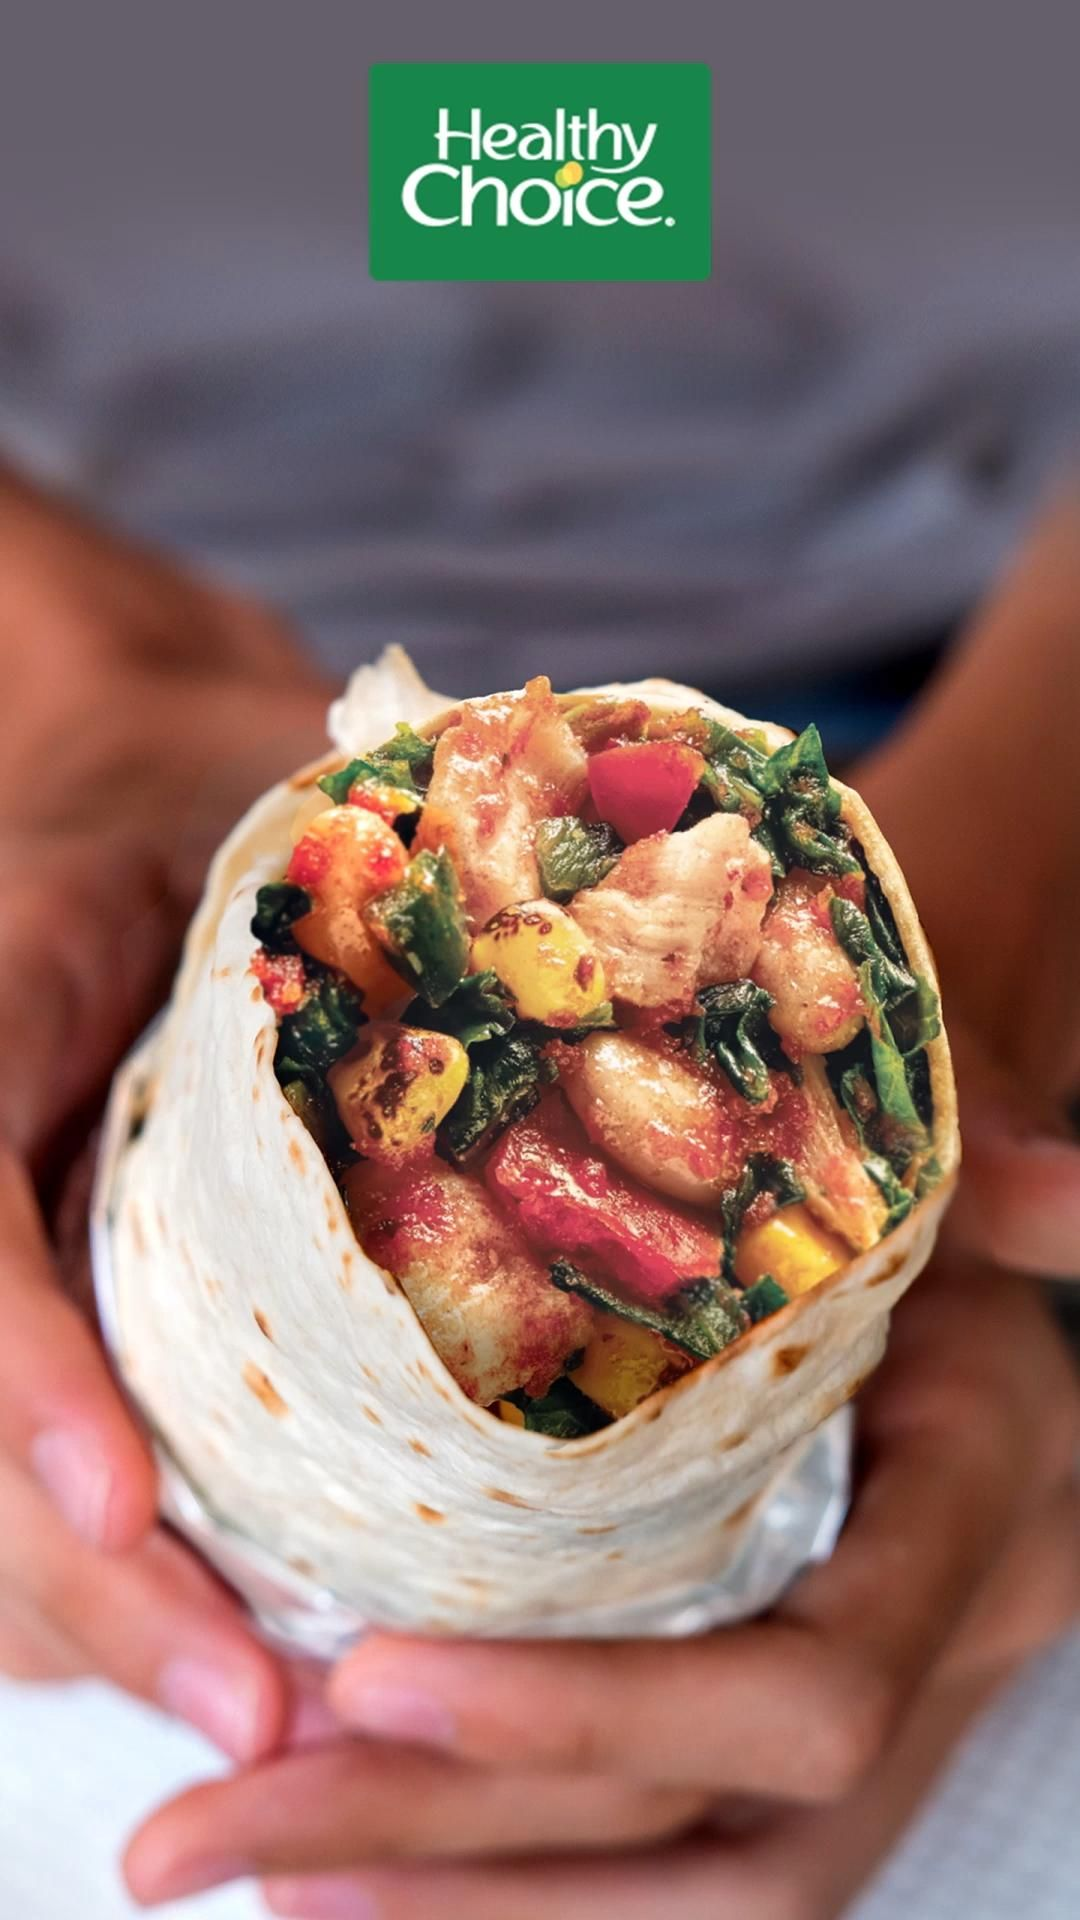 Introducing the Adobo Chicken Wrap from Healthy Ch